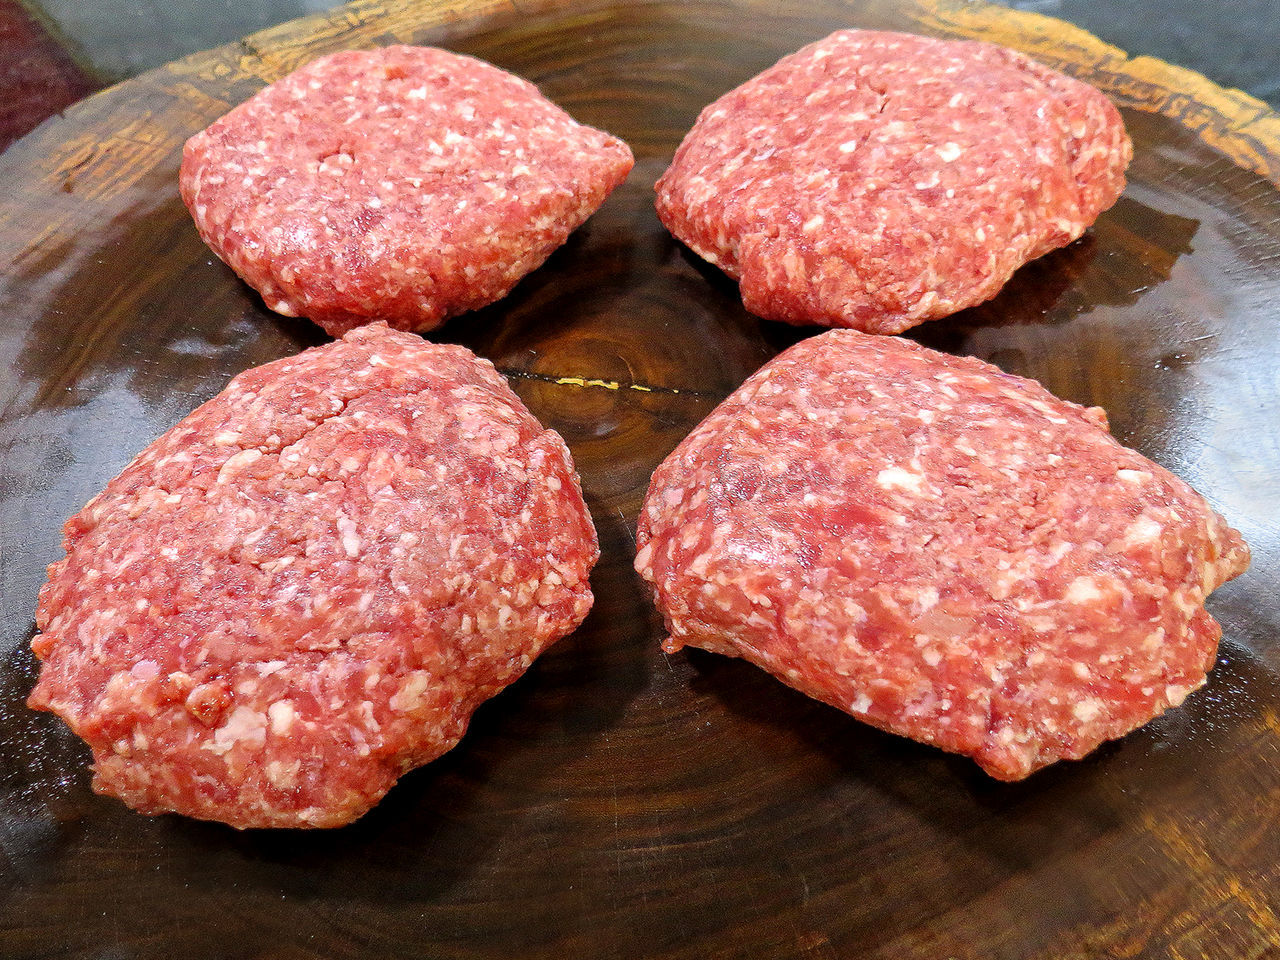 Beef Burger Close-up Day Fast Food Food Food And Drink Freshness Ground Beef Hamburger Indoors  Meat Minced No People Ready-to-eat Red Meat Sesame Snack Table Unhealthy Eating Wood - Material